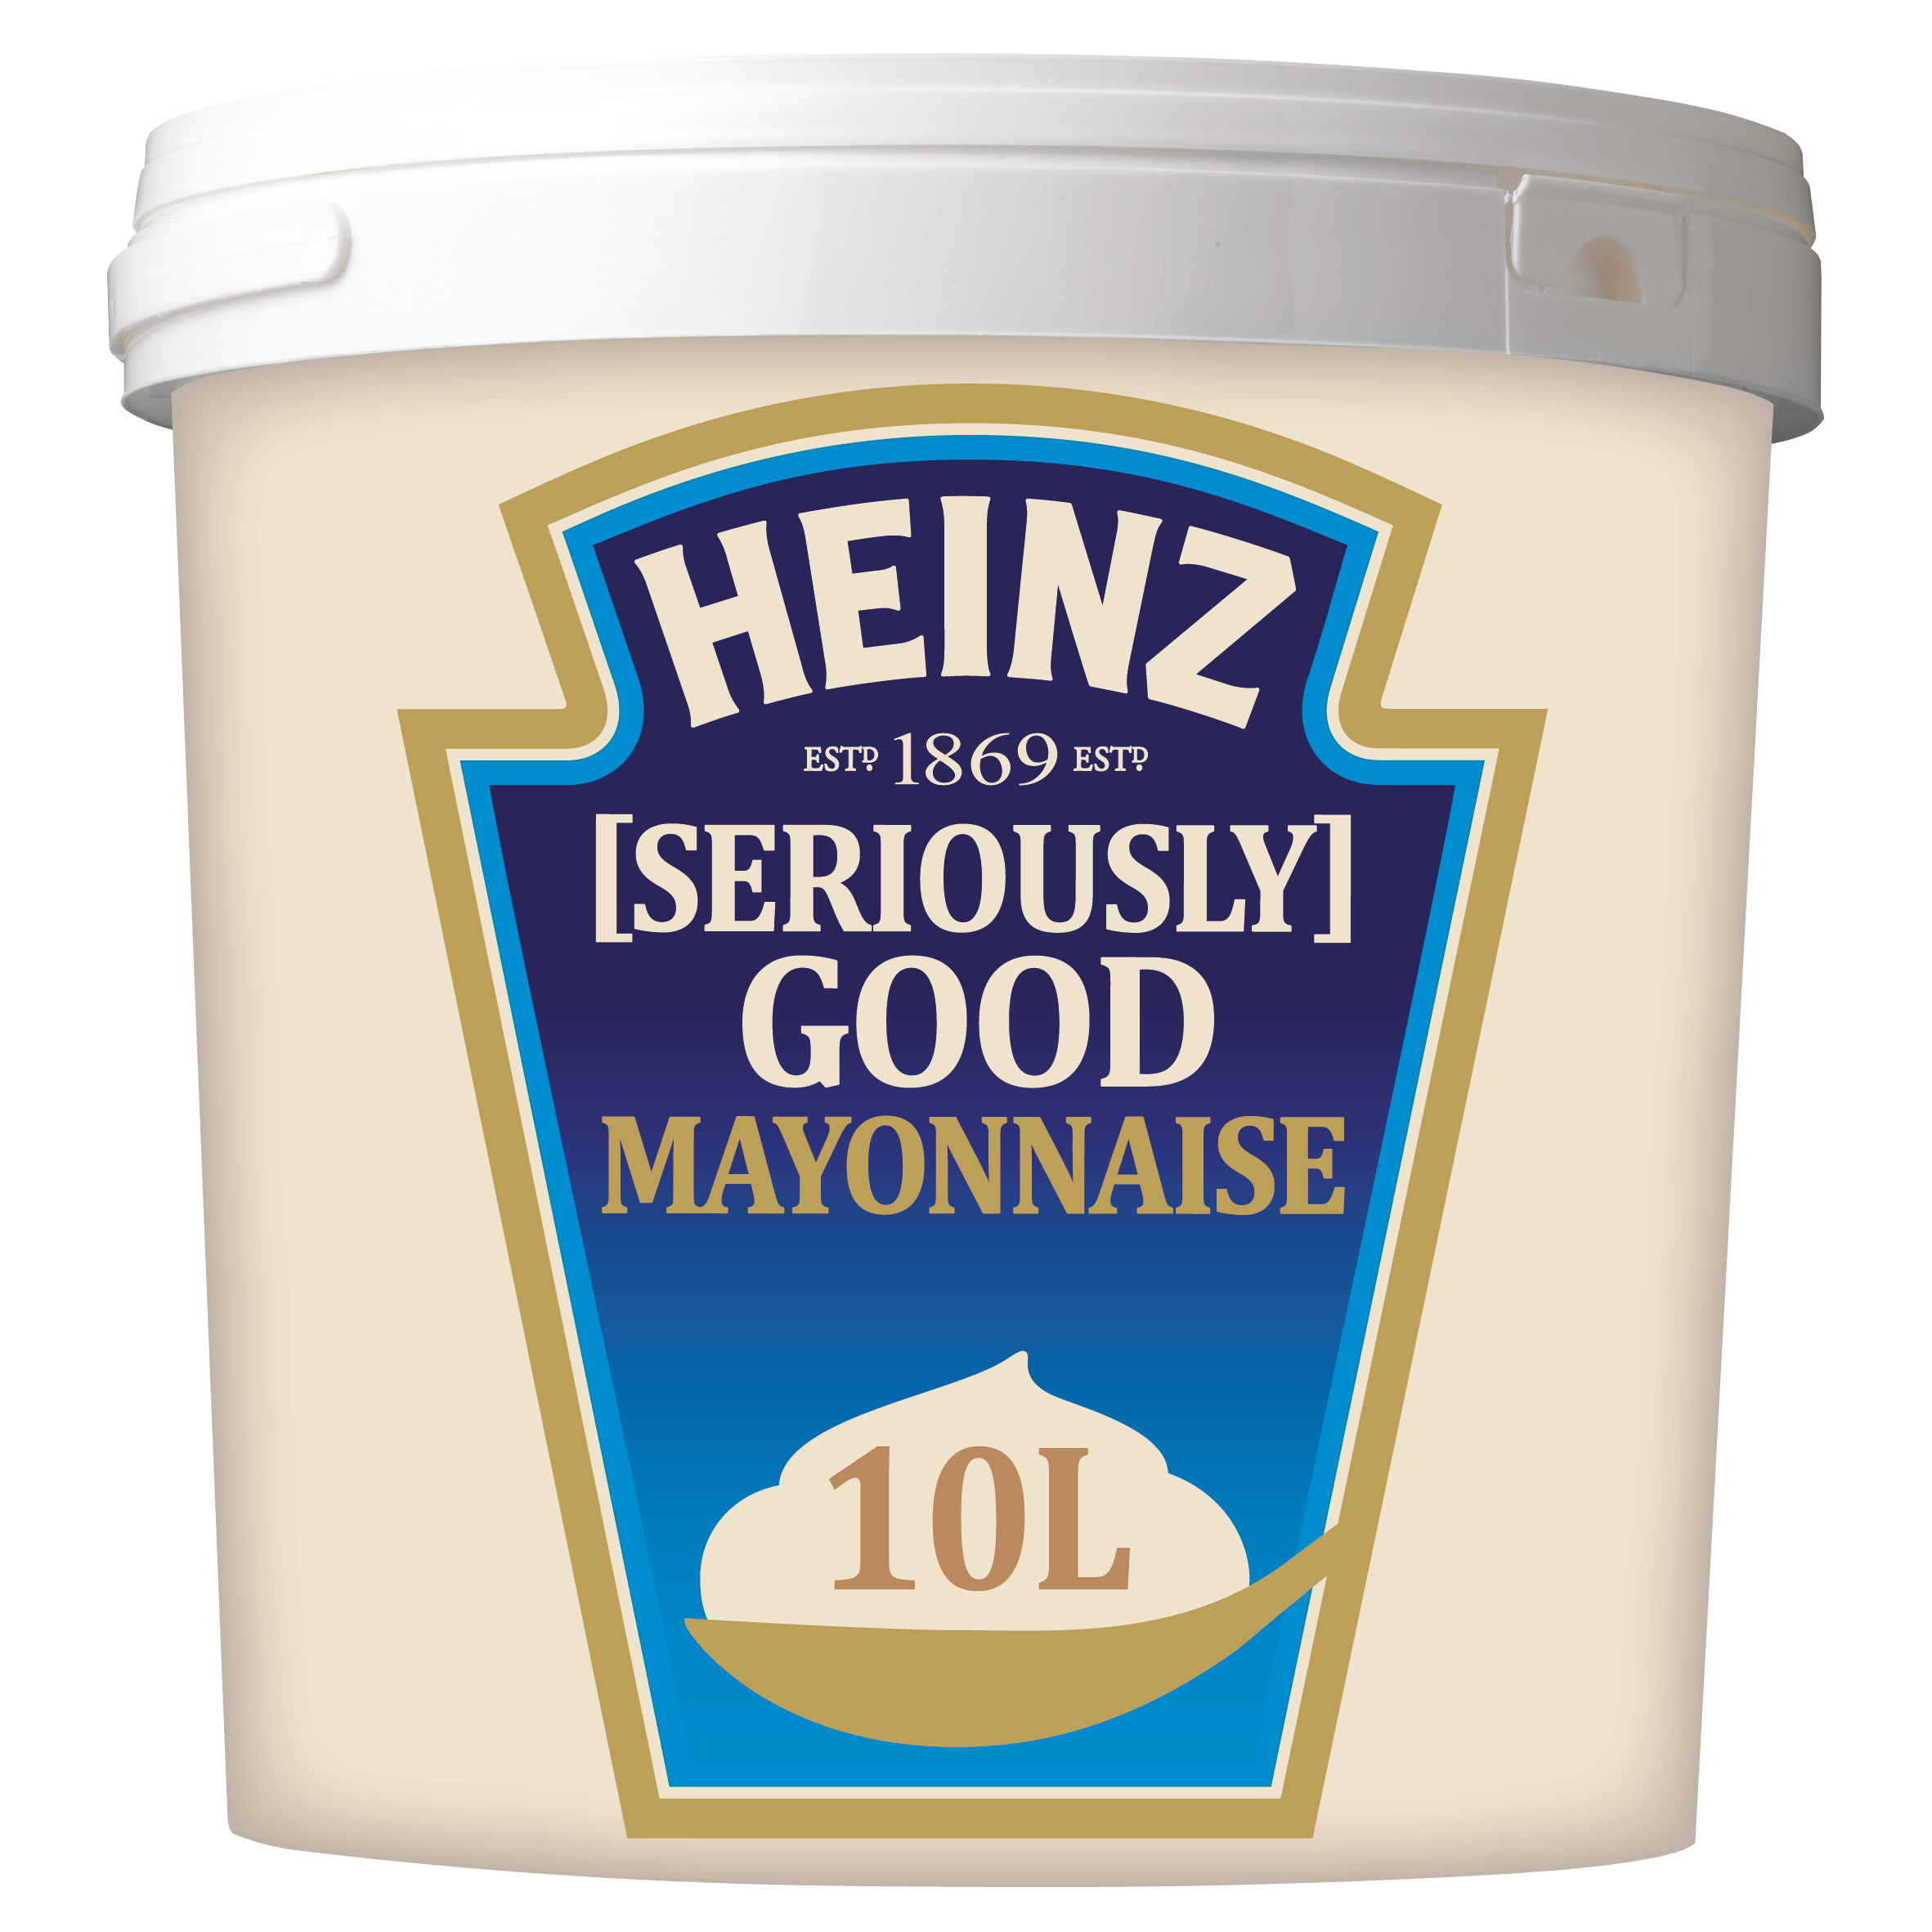 Heinz Seriously Good Mayonaise 70% 10L